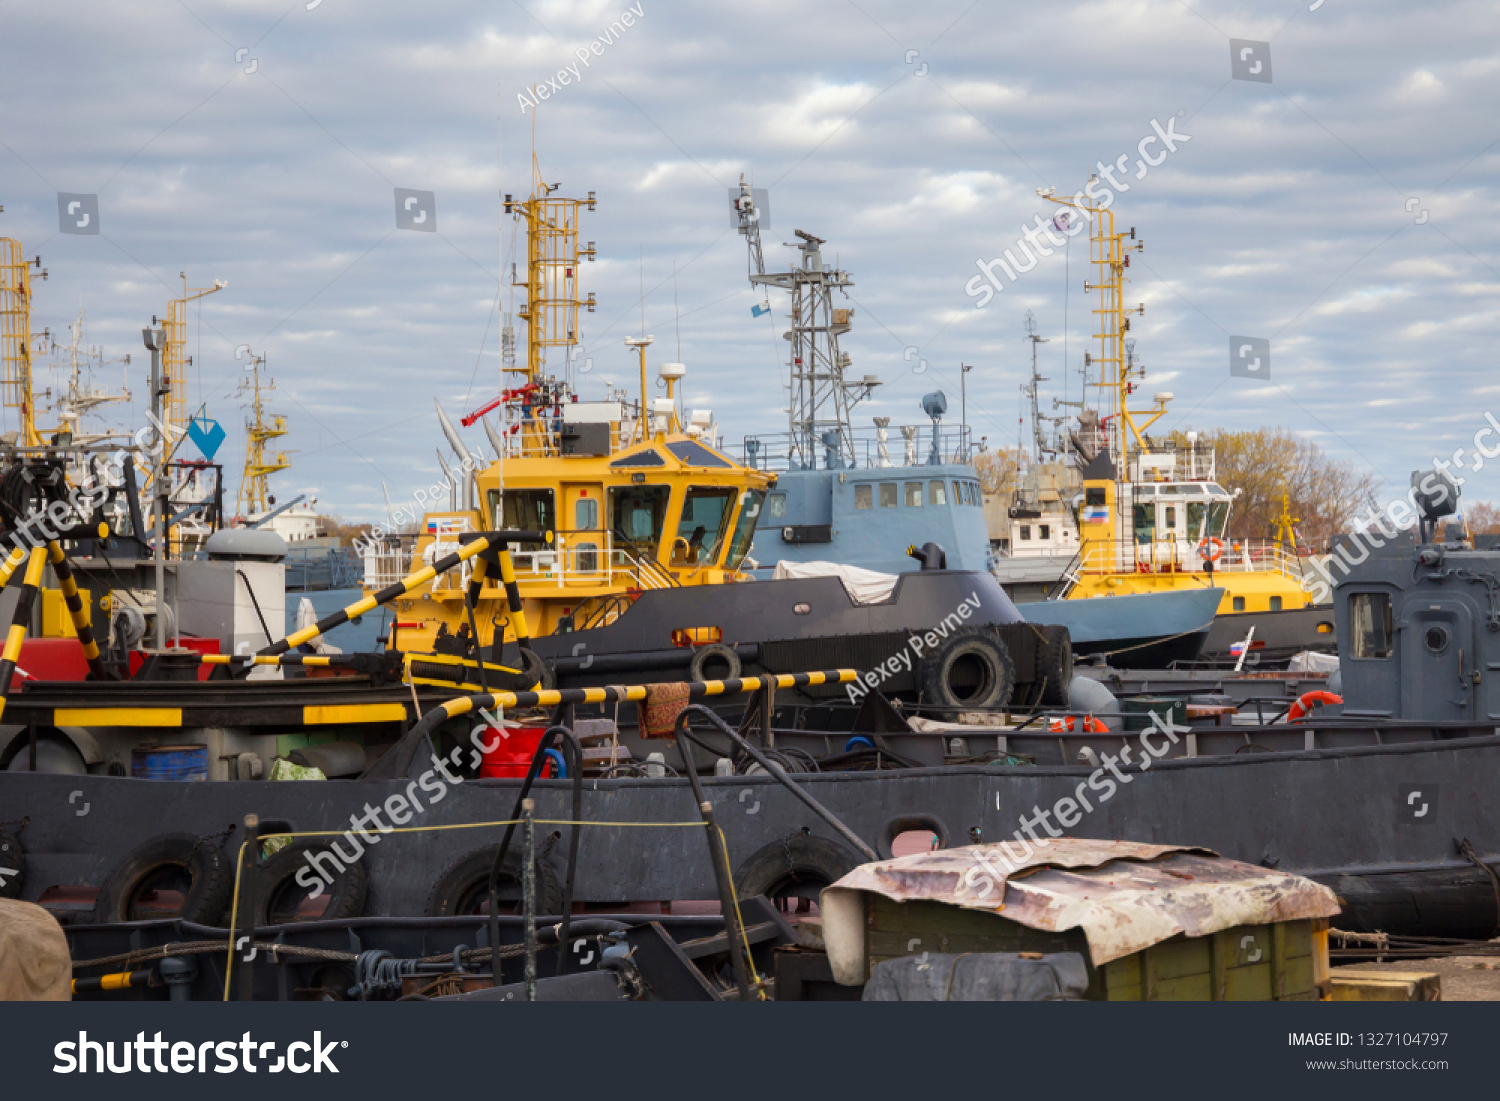 Tugboats and other marine support vessels in port. #1327104797